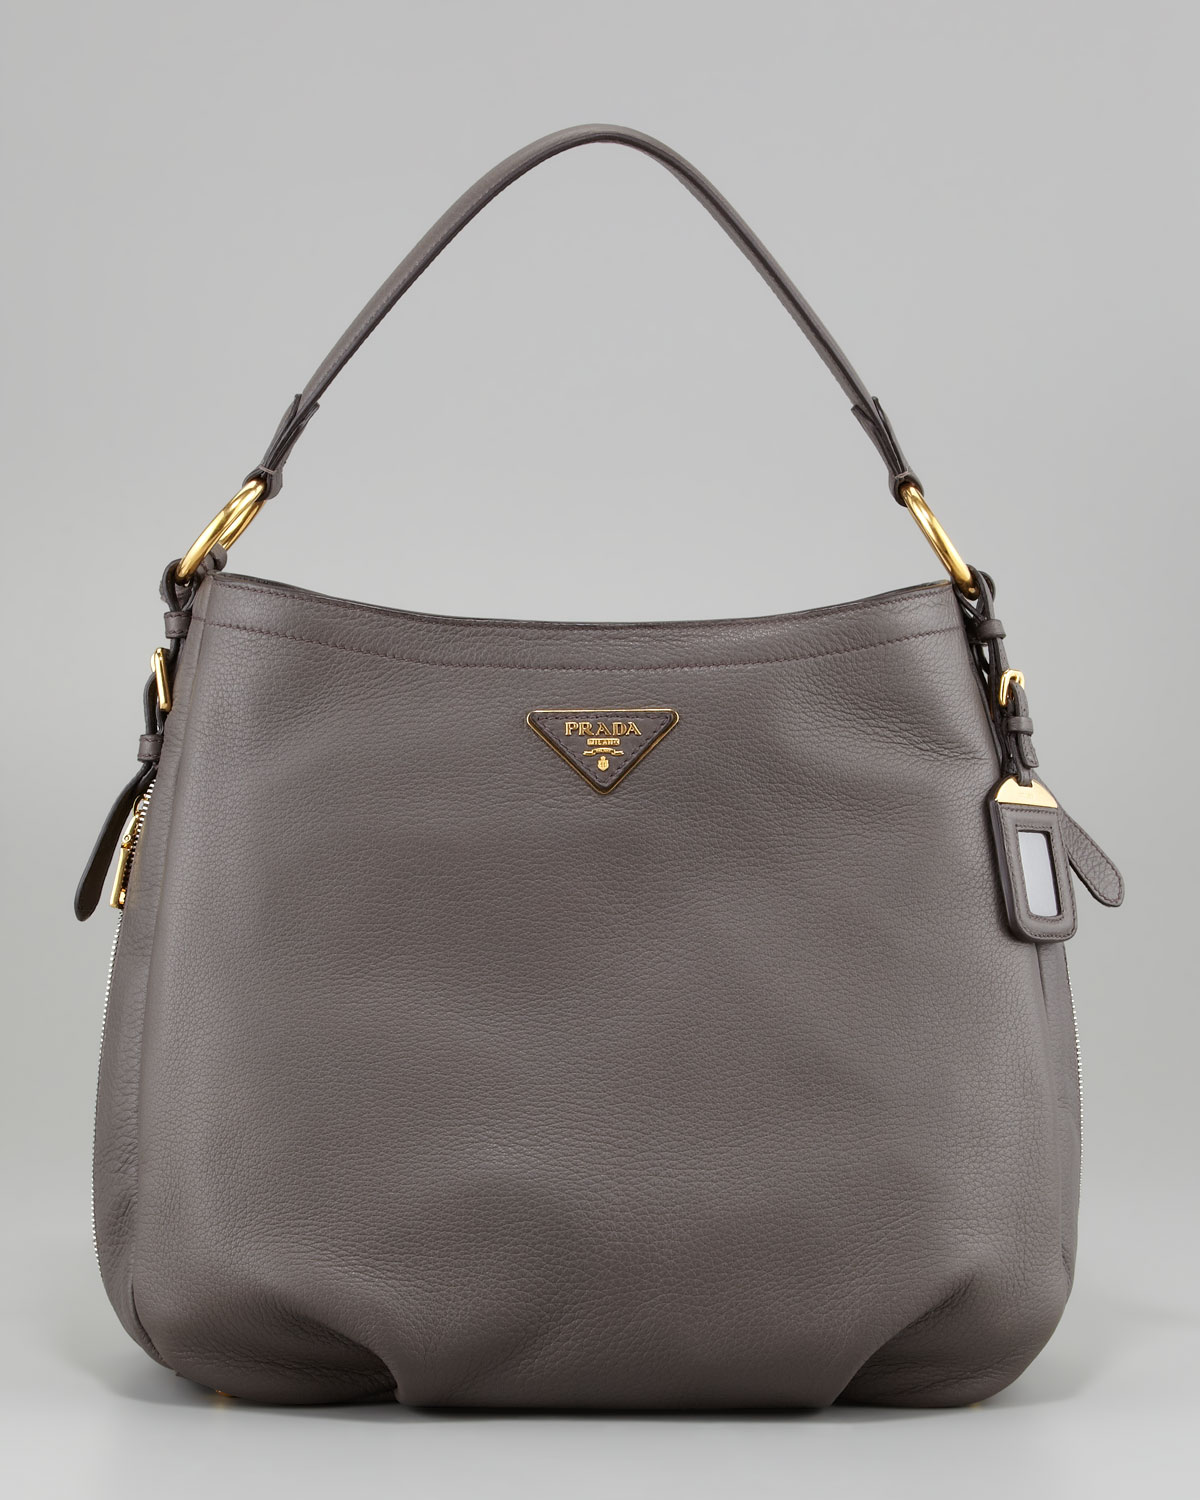 Prada Cervo Hobo Bag in Gray | Lyst